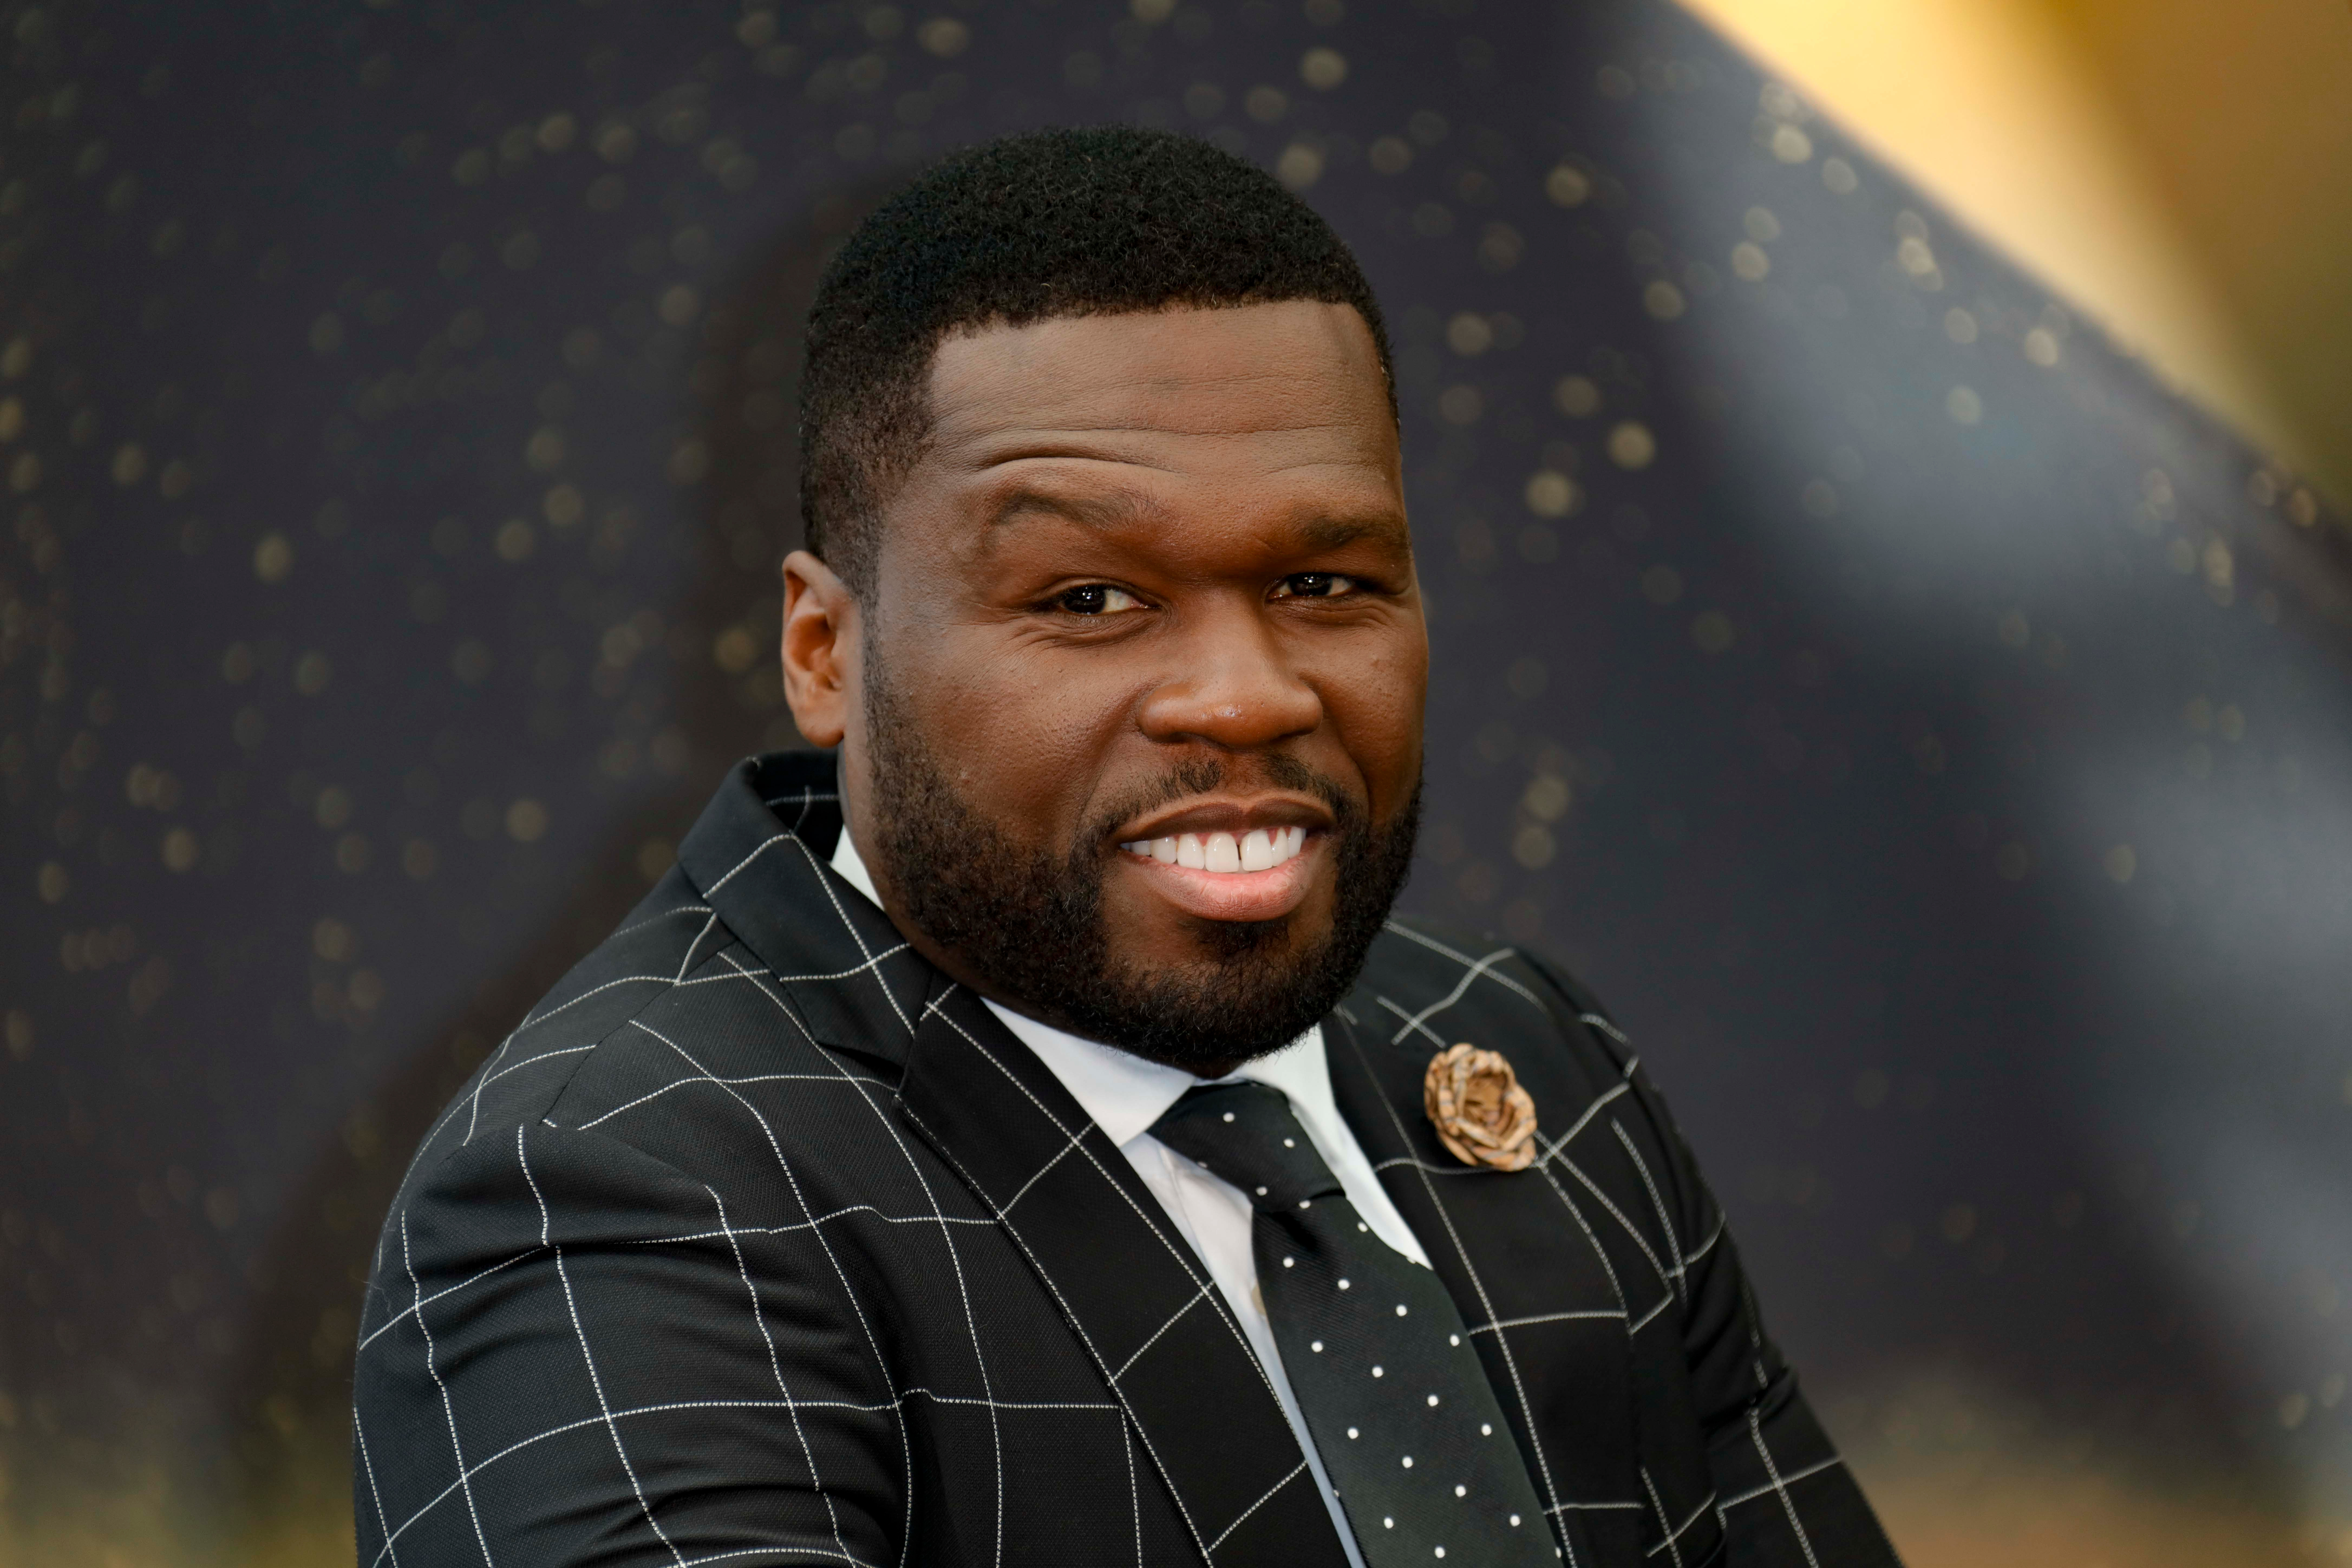 50 Cent Says He'd Pick Tekashi 6ix9ine Over His Own Son